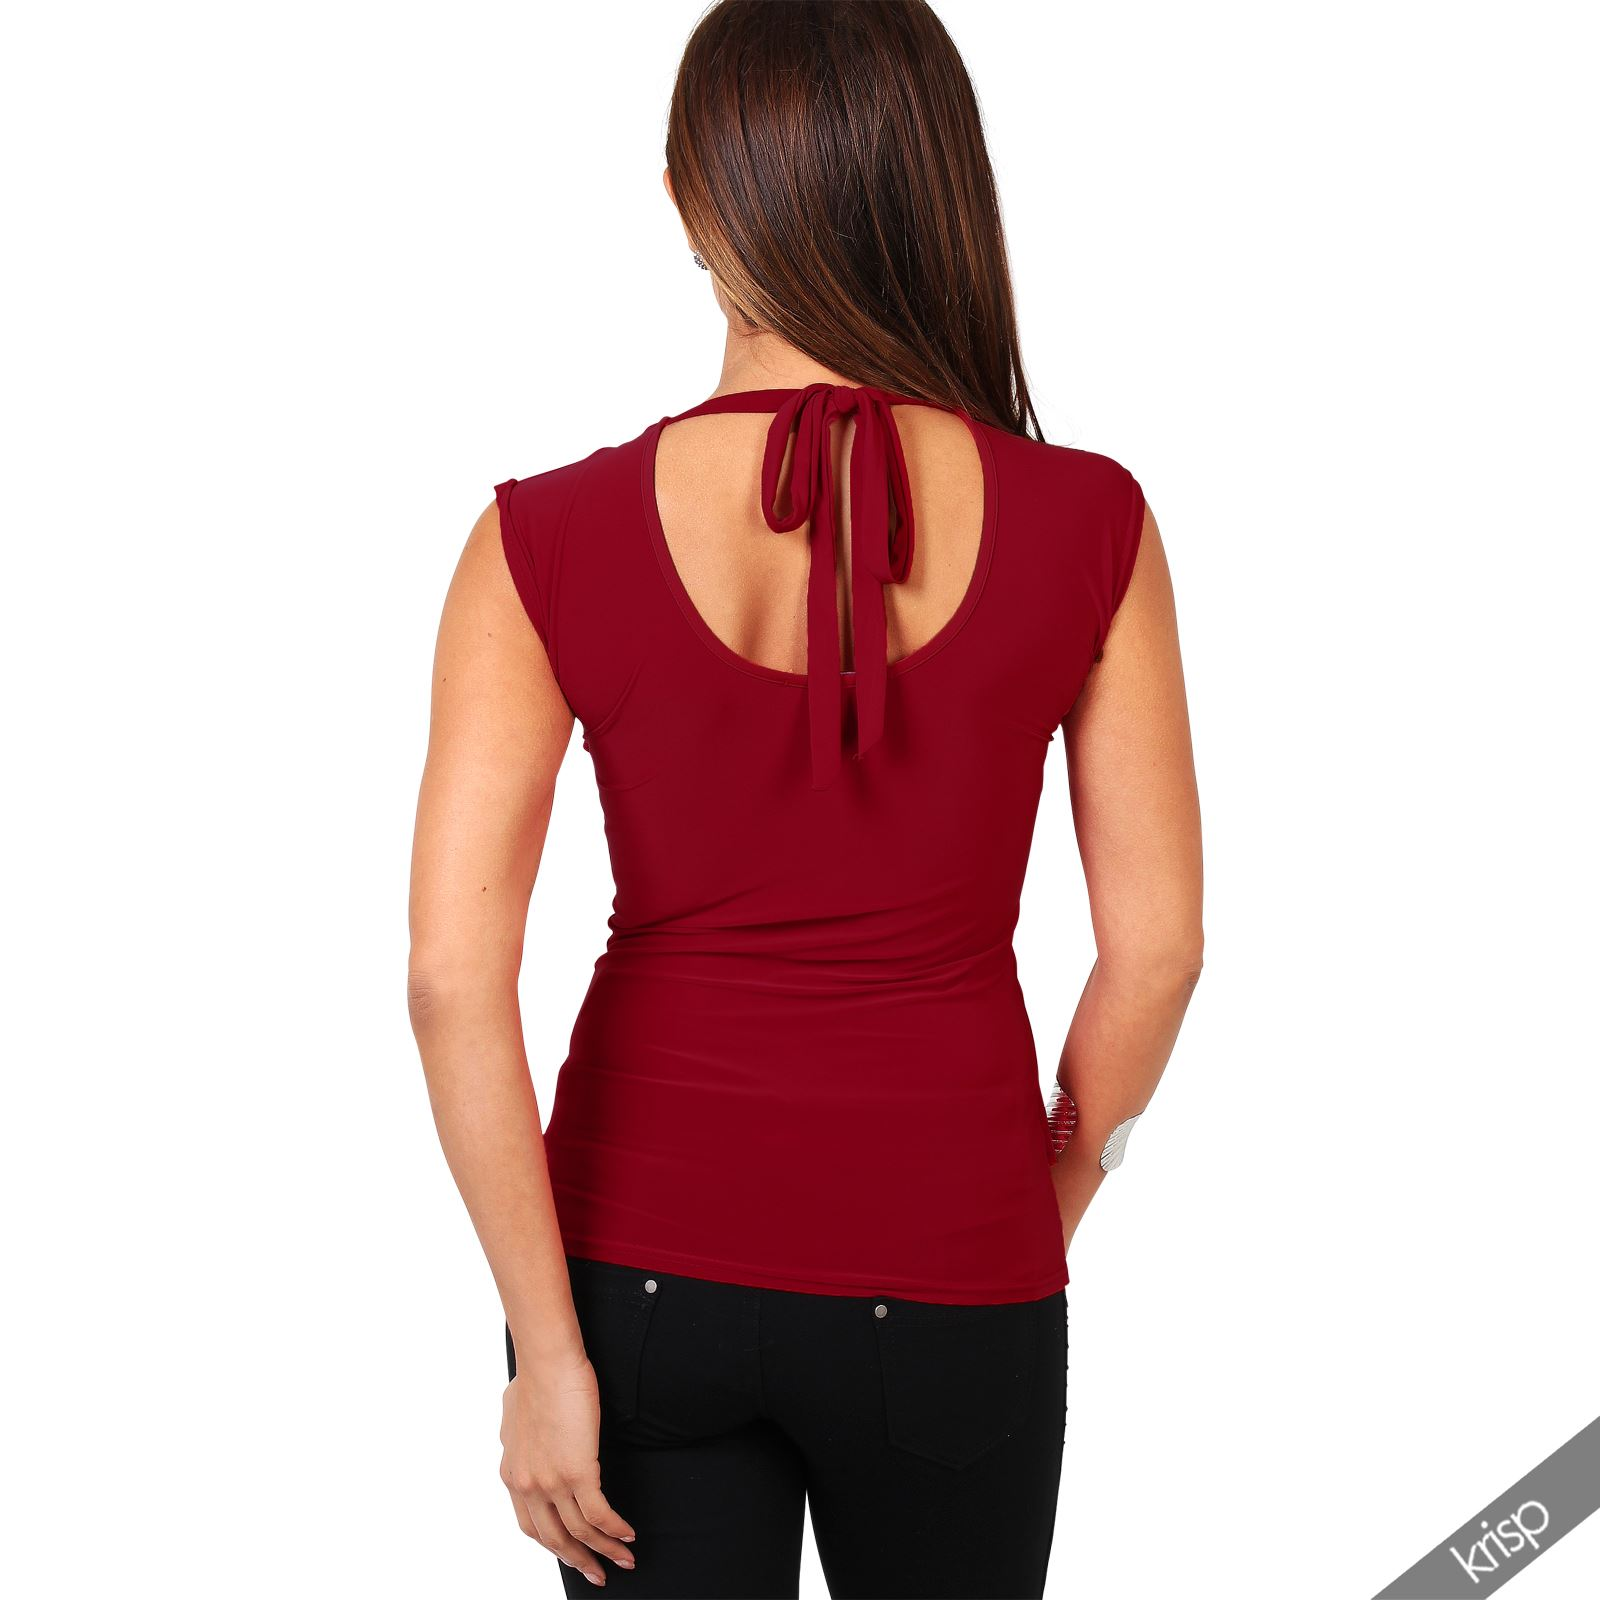 Womens-Ladies-Cowl-Neck-Blouse-Sleeveless-Stretch-Summer-Jersey-Top-Size-8-20 thumbnail 20